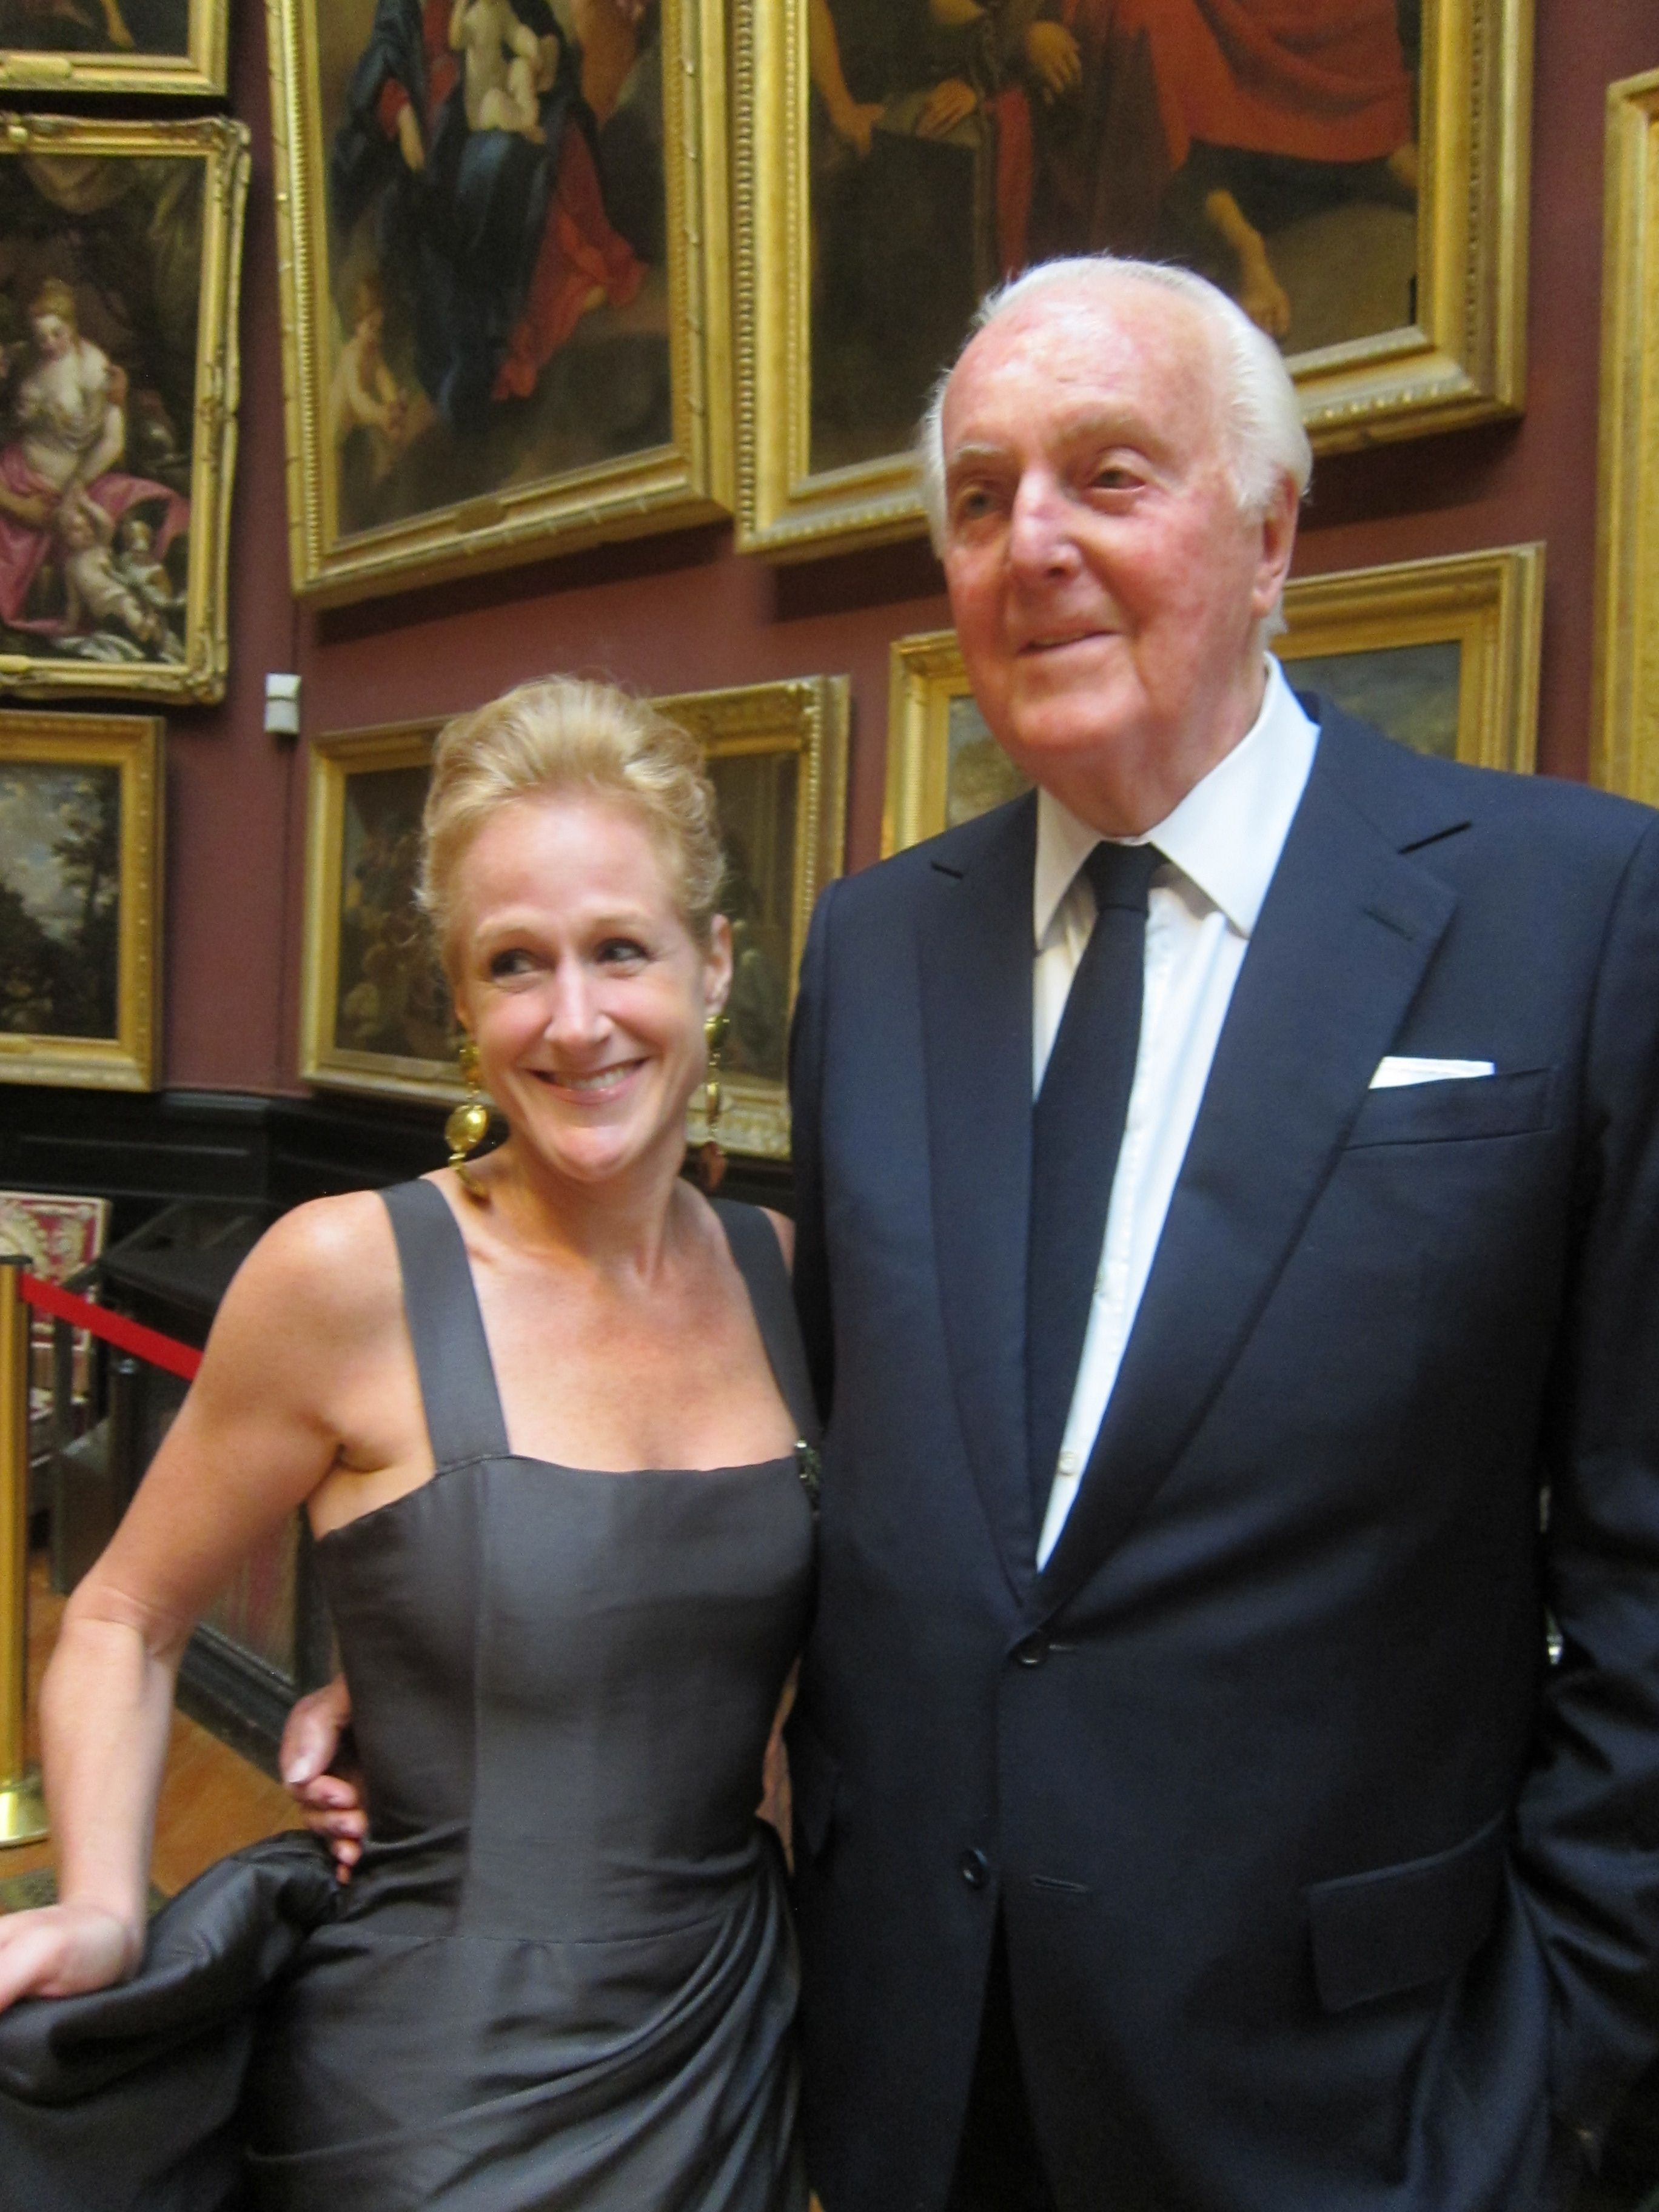 with Hubert de Givenchy at Chantilly